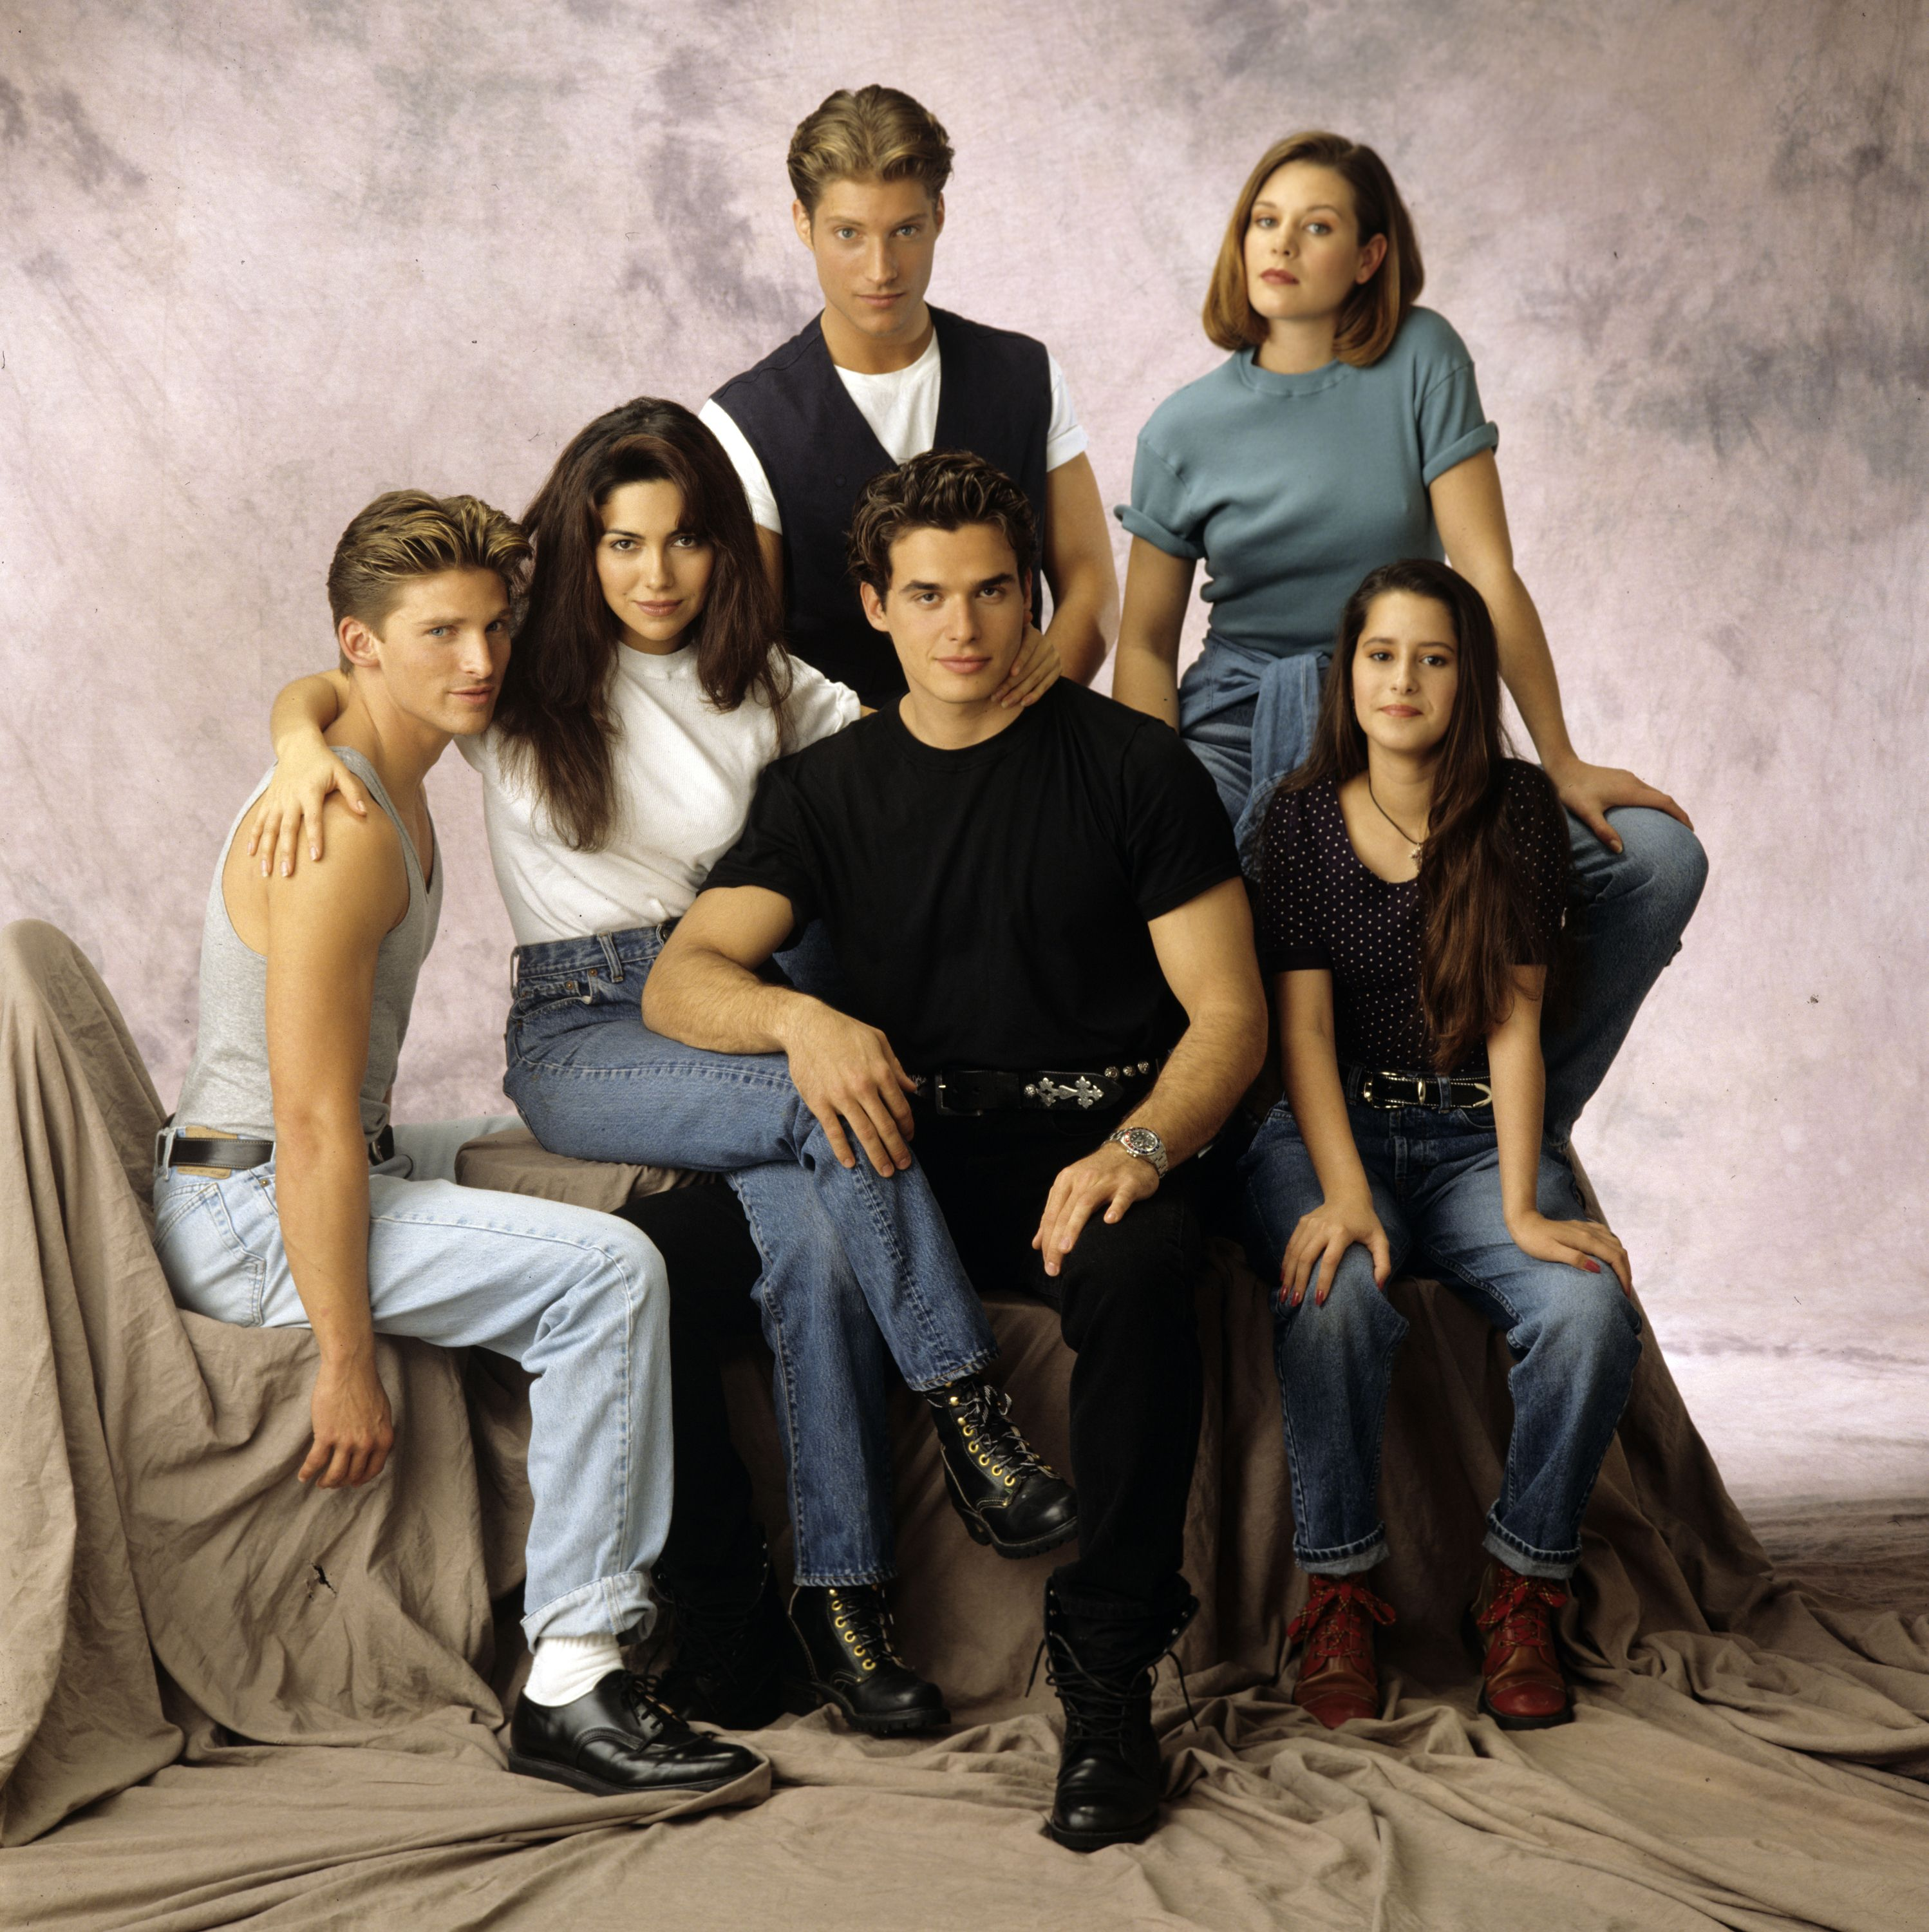 General hospital cast members leaving - The Gh Teen Scene Gh50 General Hospitalhospitalskaren